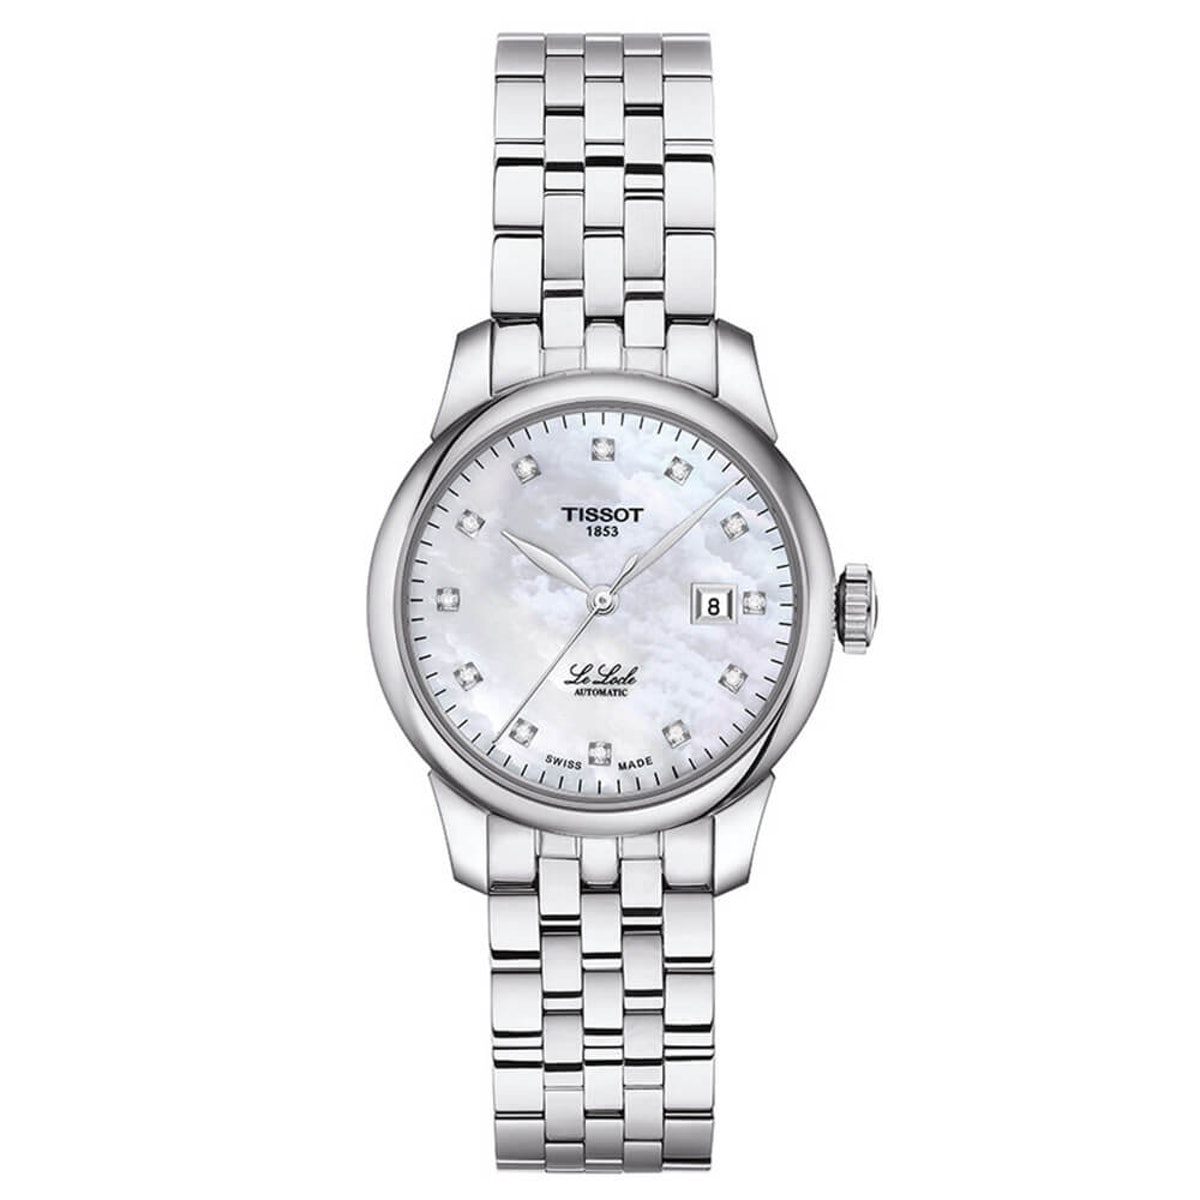 Tissot Le Locle Automatic Lady Diamond Index Watch, 29 mm